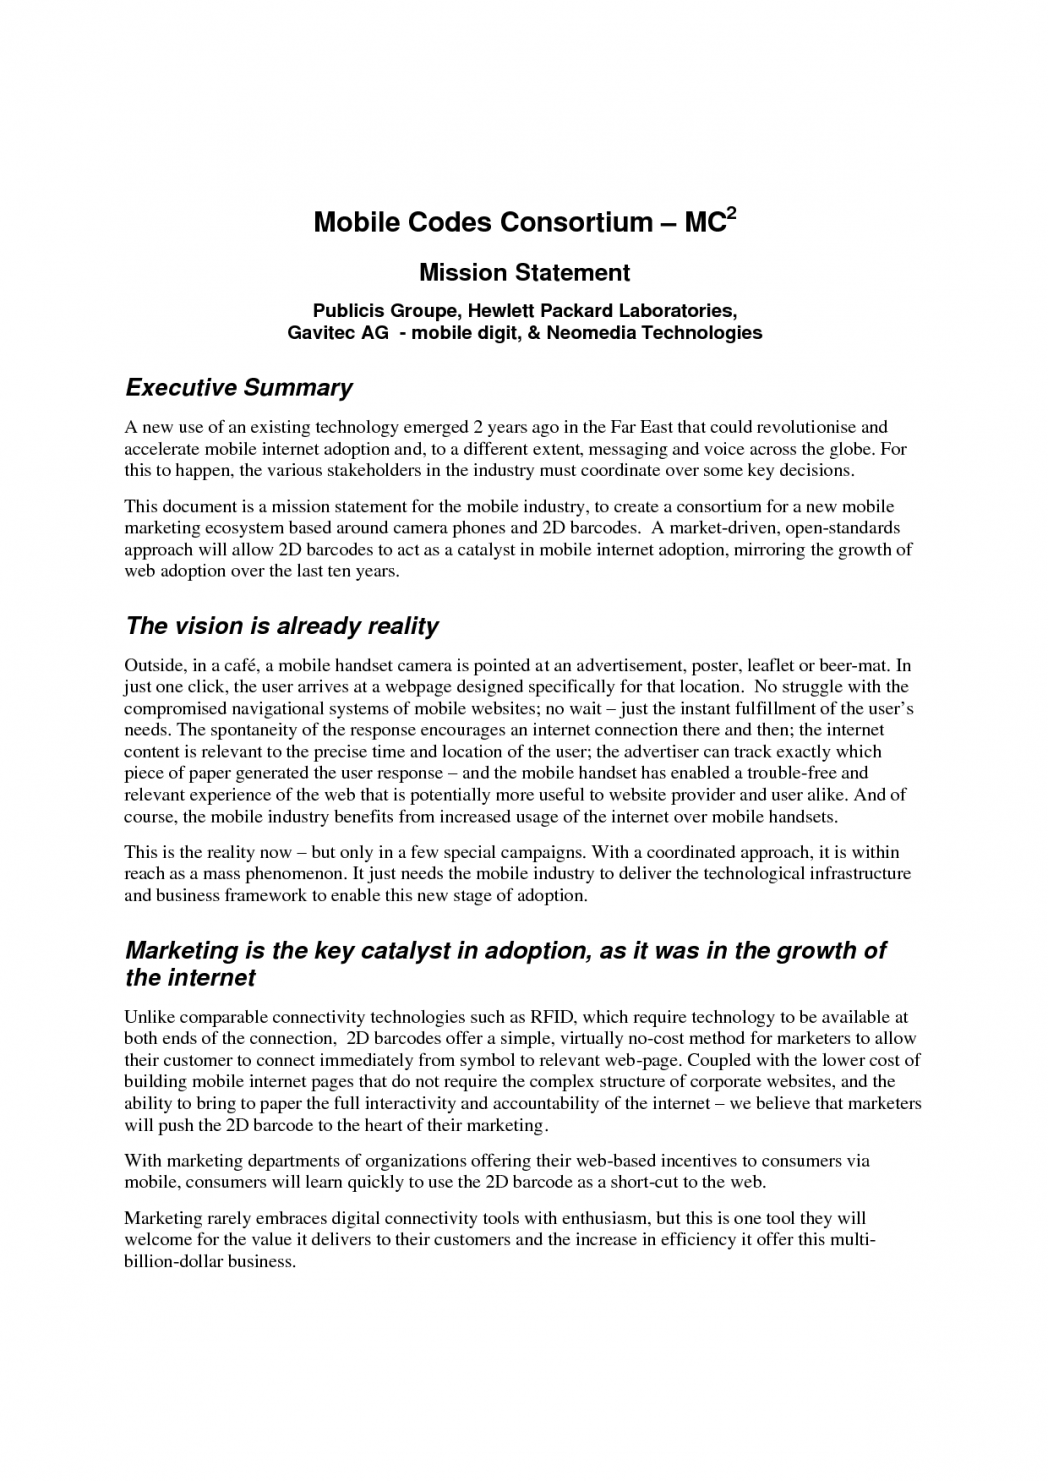 006 Argumentative Essay On Death Penalty Example Capital Punishment About The Arguments For Disney Mission Statement Template H1t Against Unbelievable Ideas Persuasive In Philippines Pro Full